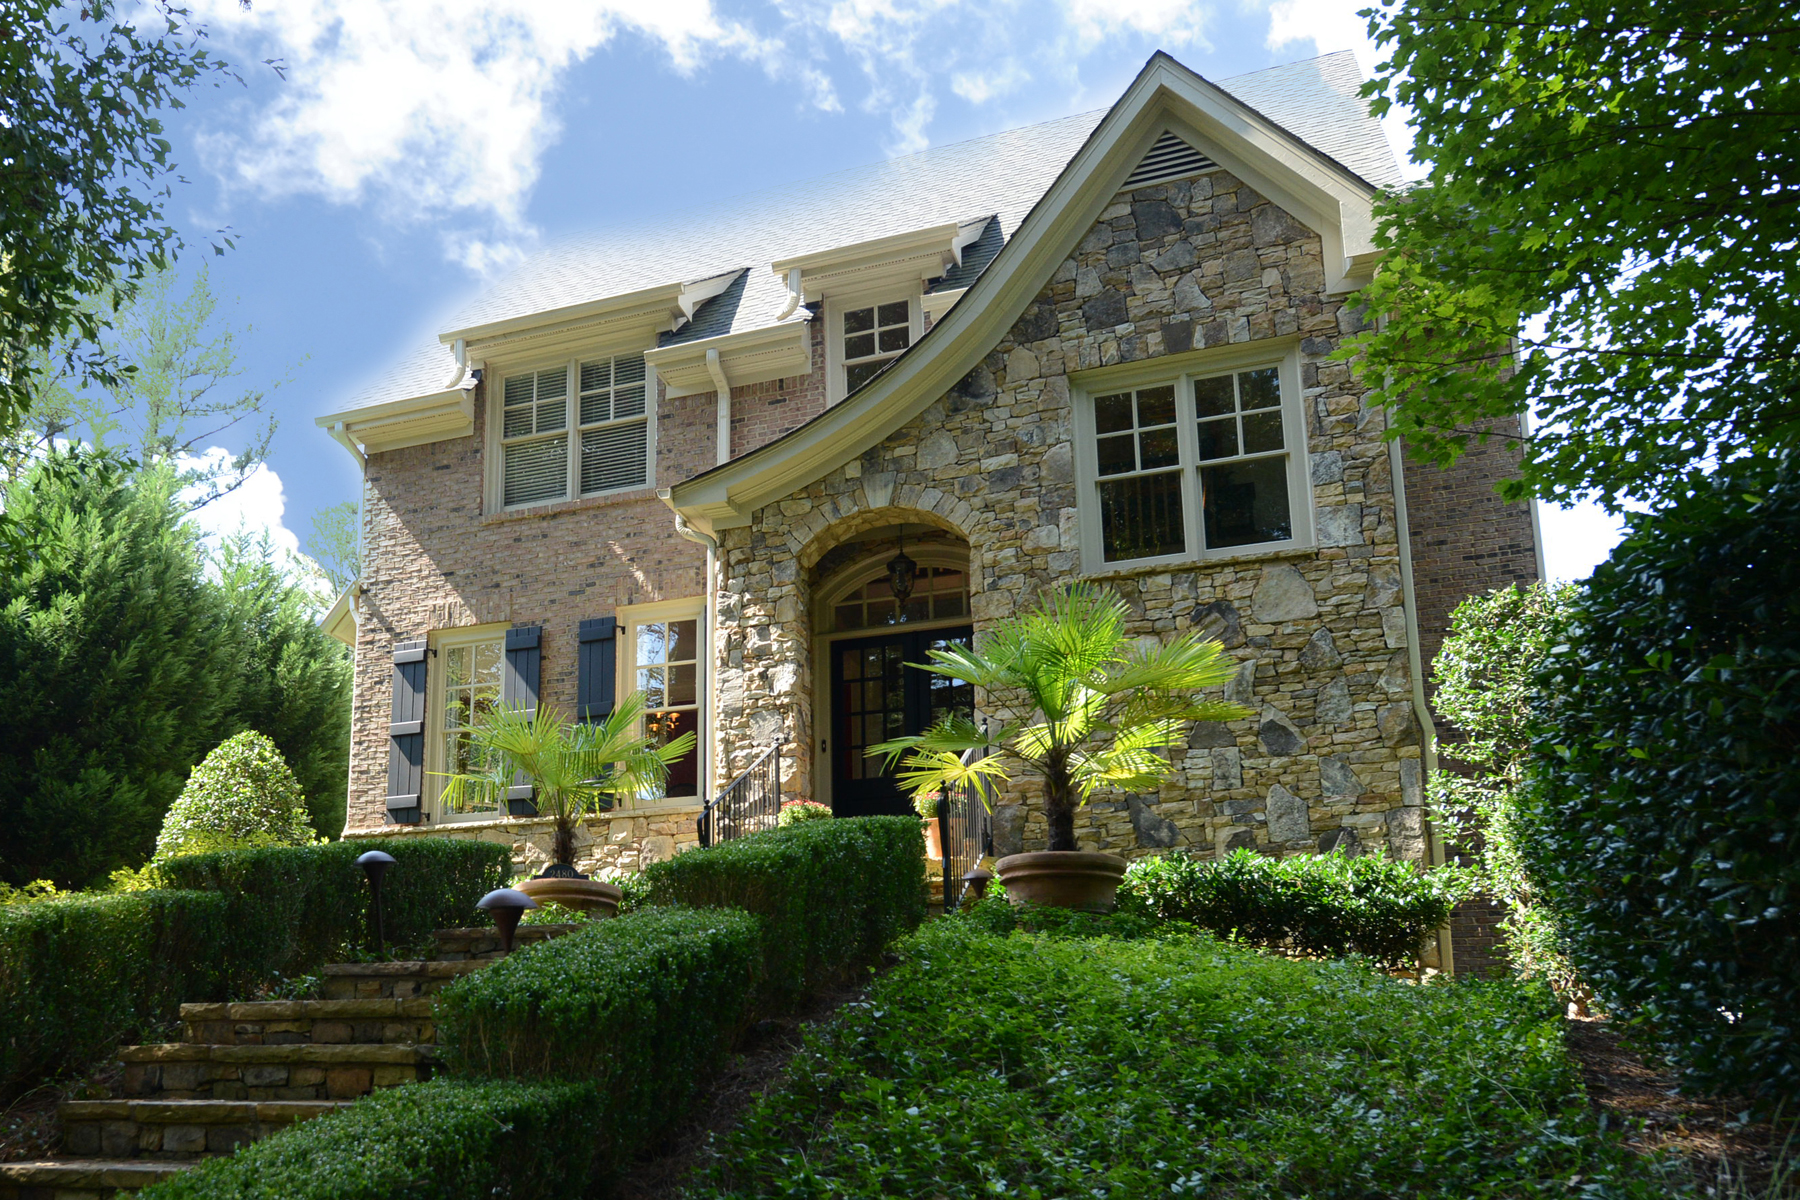 Single Family Home for Active at Total Perfection Throughout This Custom Built Home 2480 Ridgewood Road NW Atlanta, Georgia 30318 United States